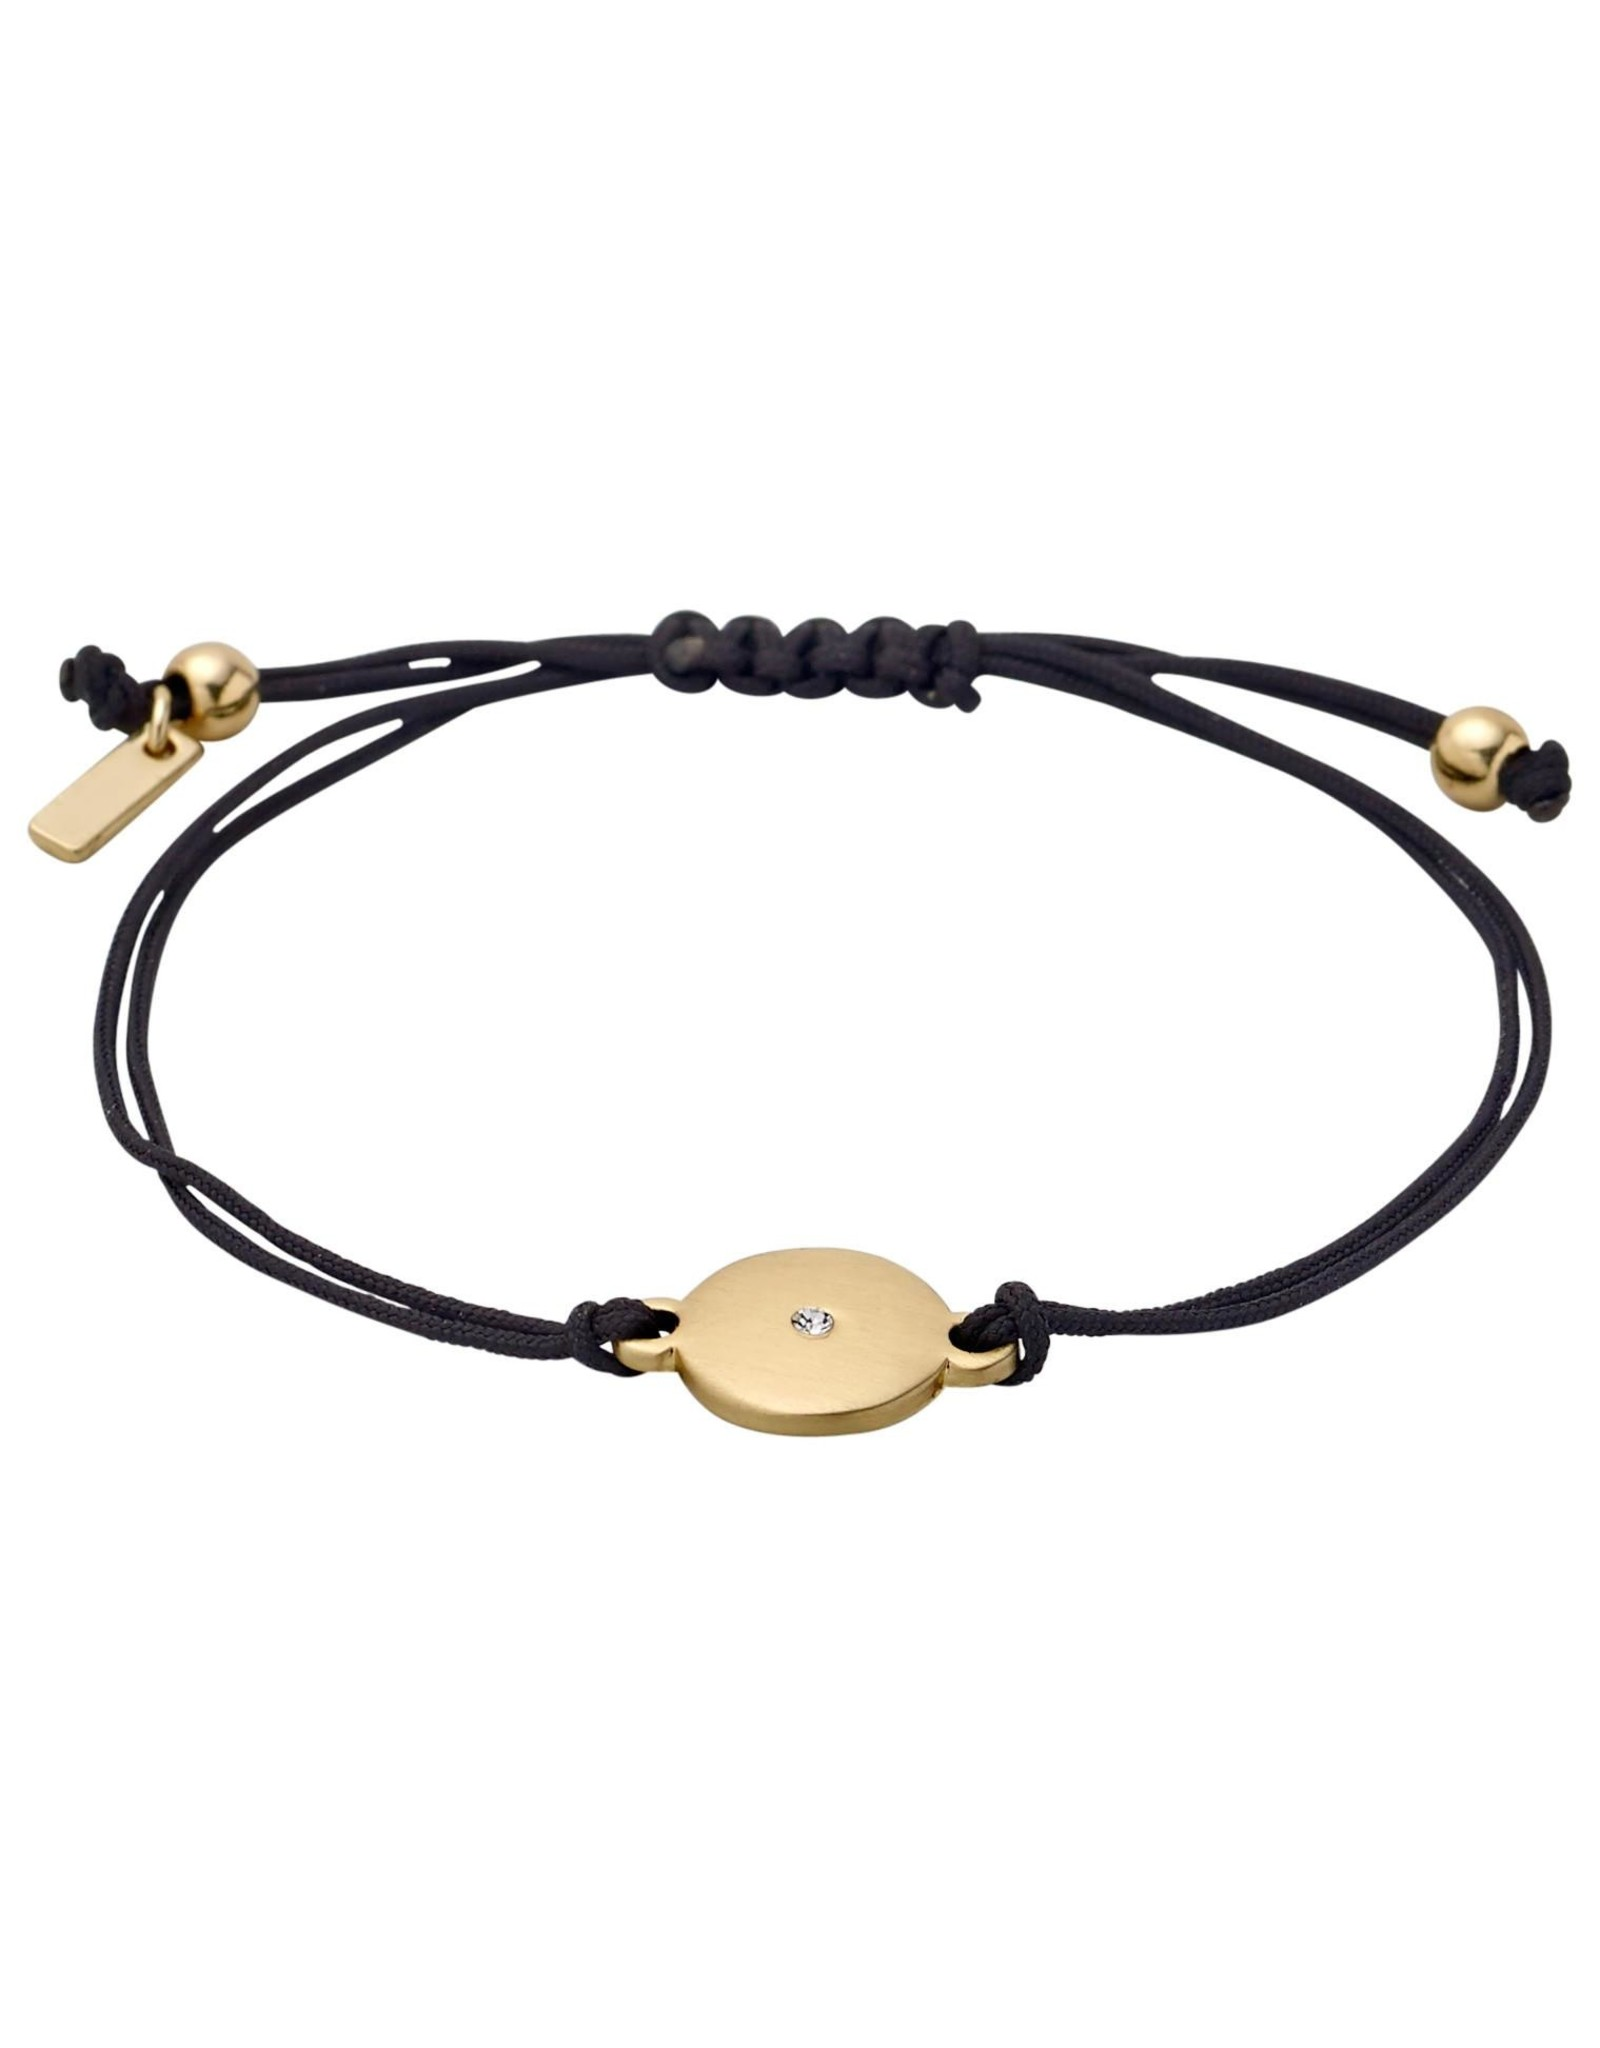 Pilgrim Friendship Bracelet, Gold Plated, Black